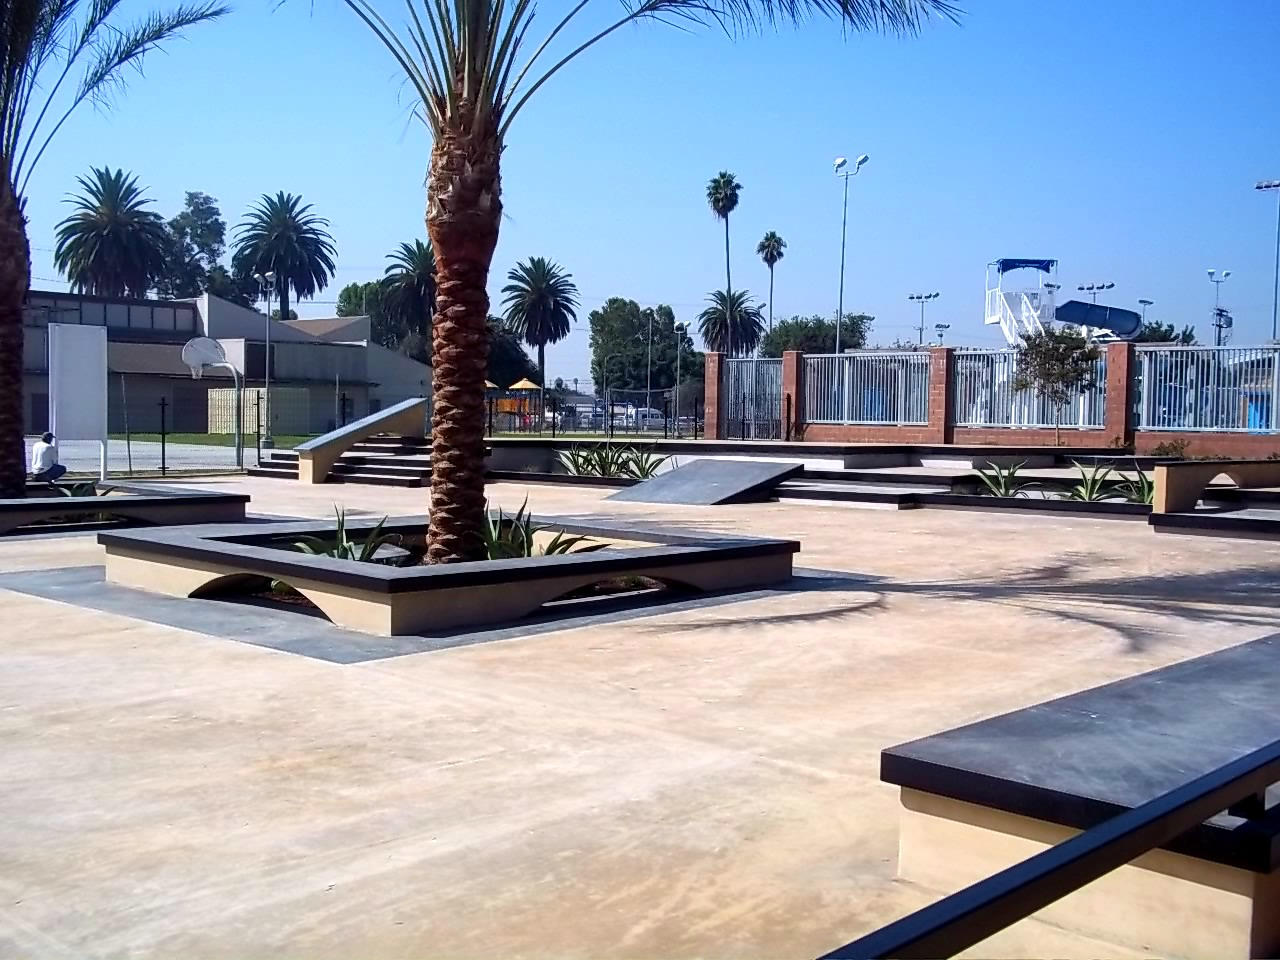 jackie tatum skate plaza, los angeles, california